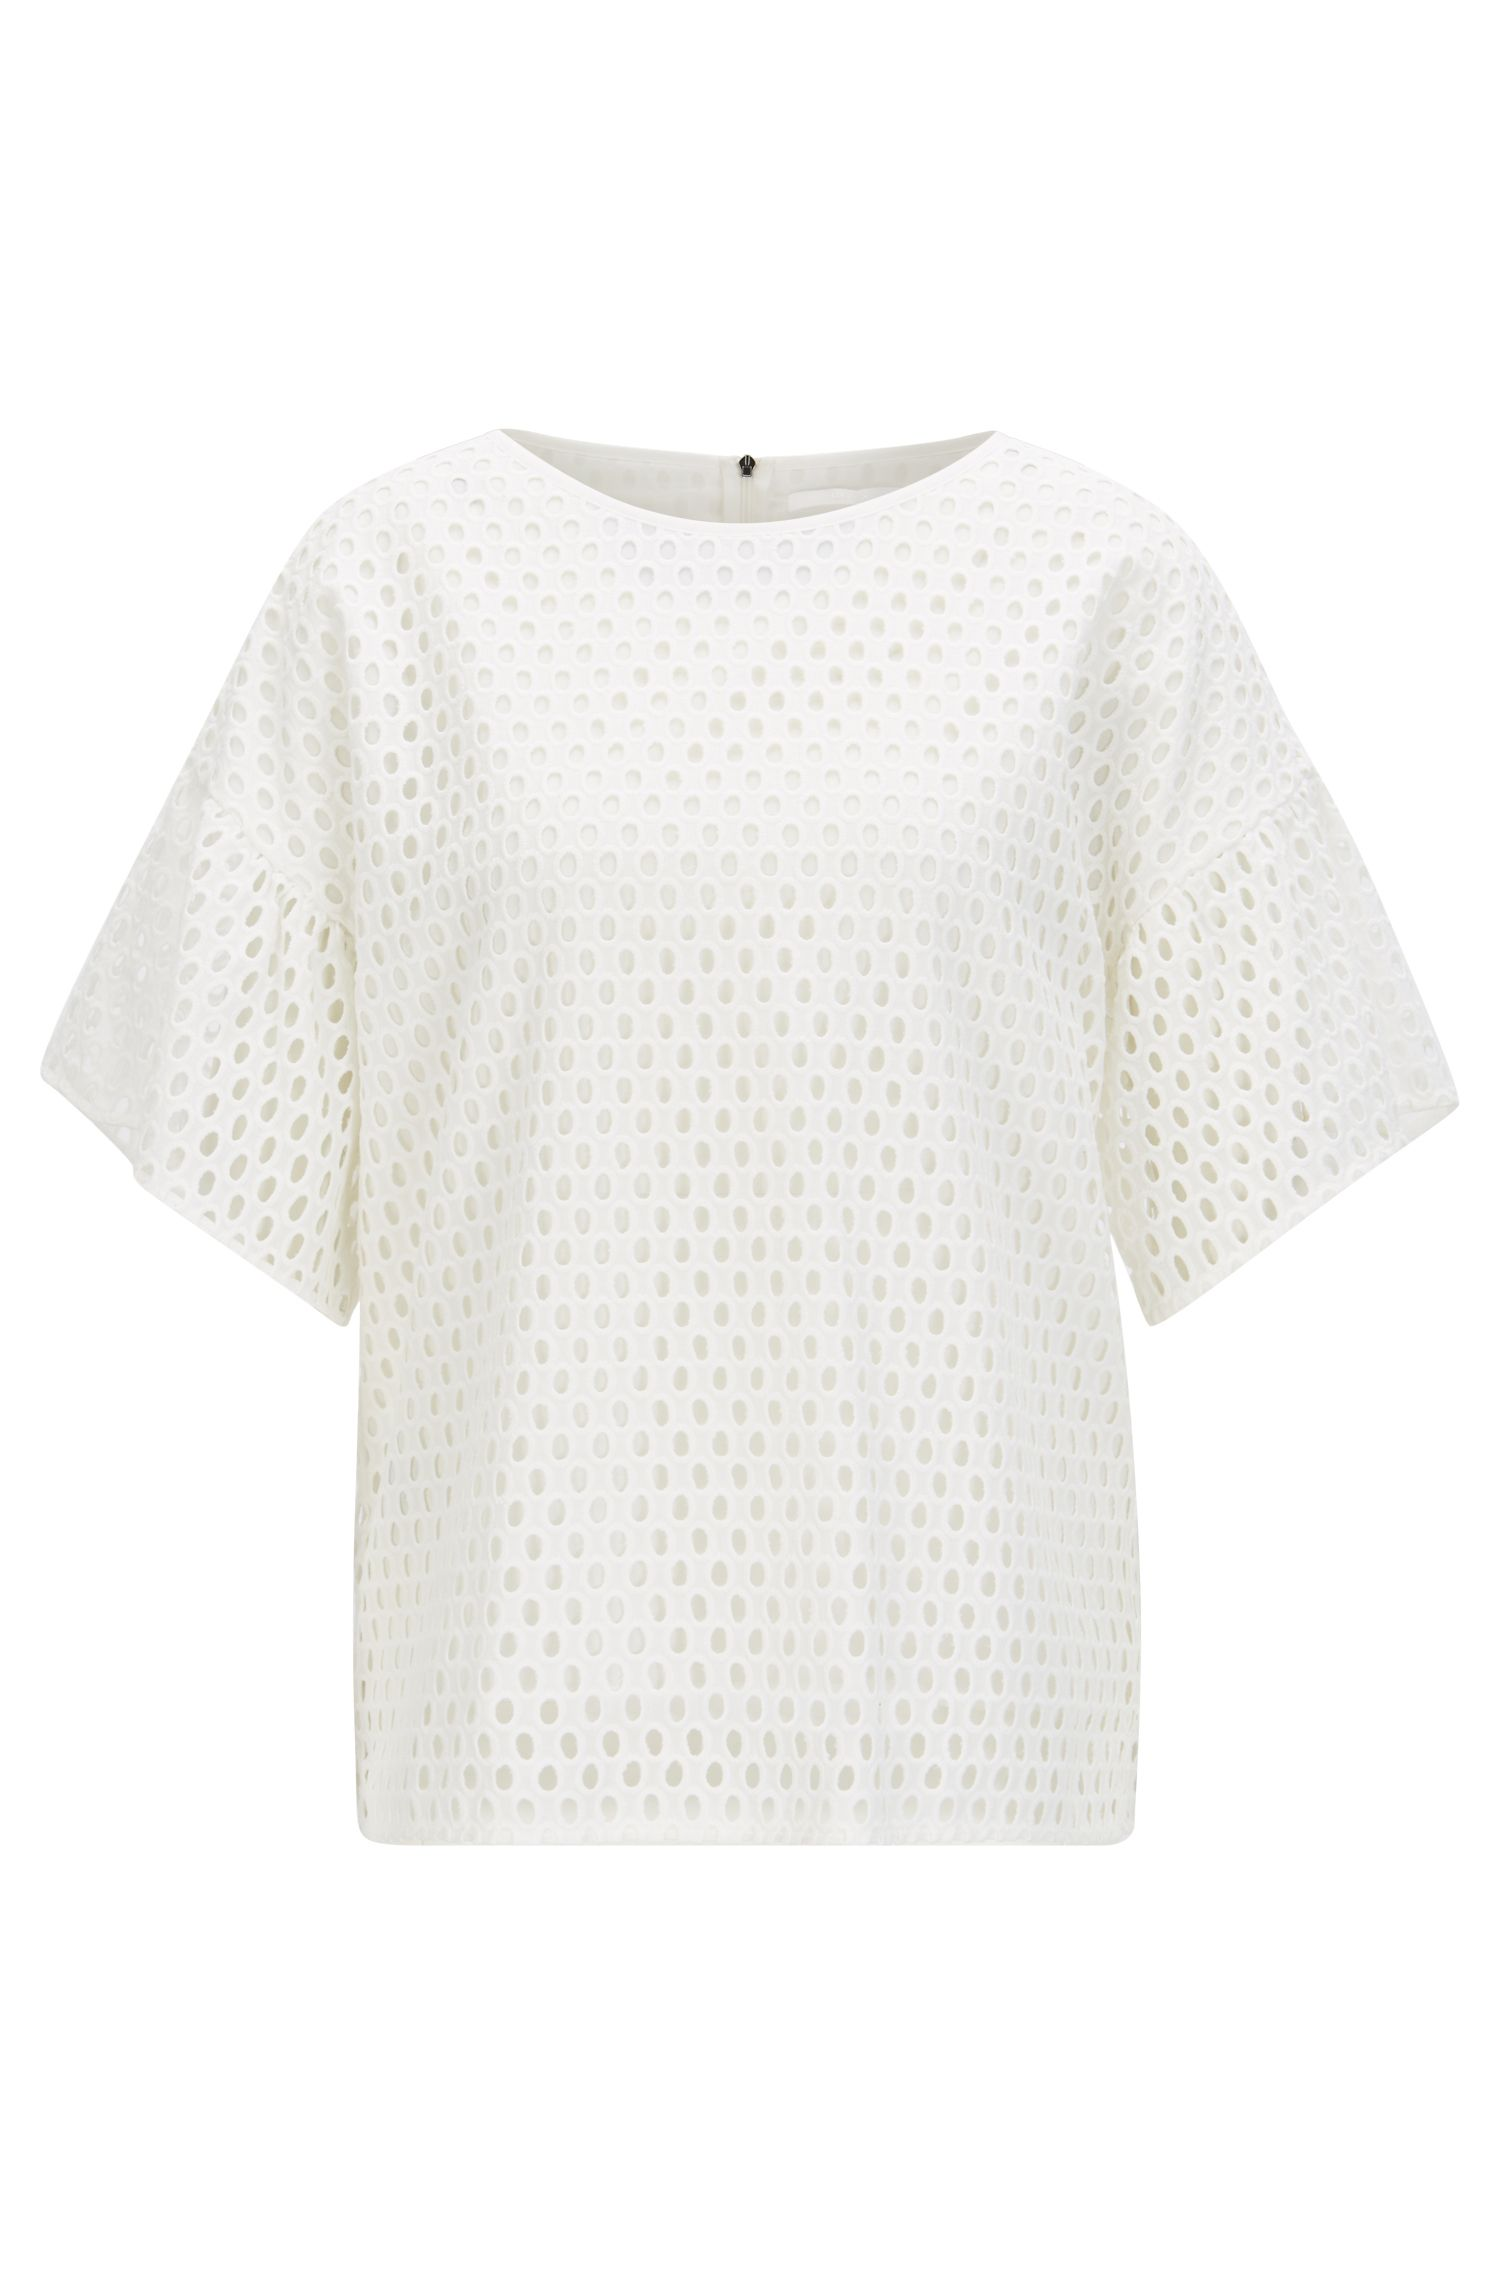 Dropped-shoulder top in cotton broderie anglaise